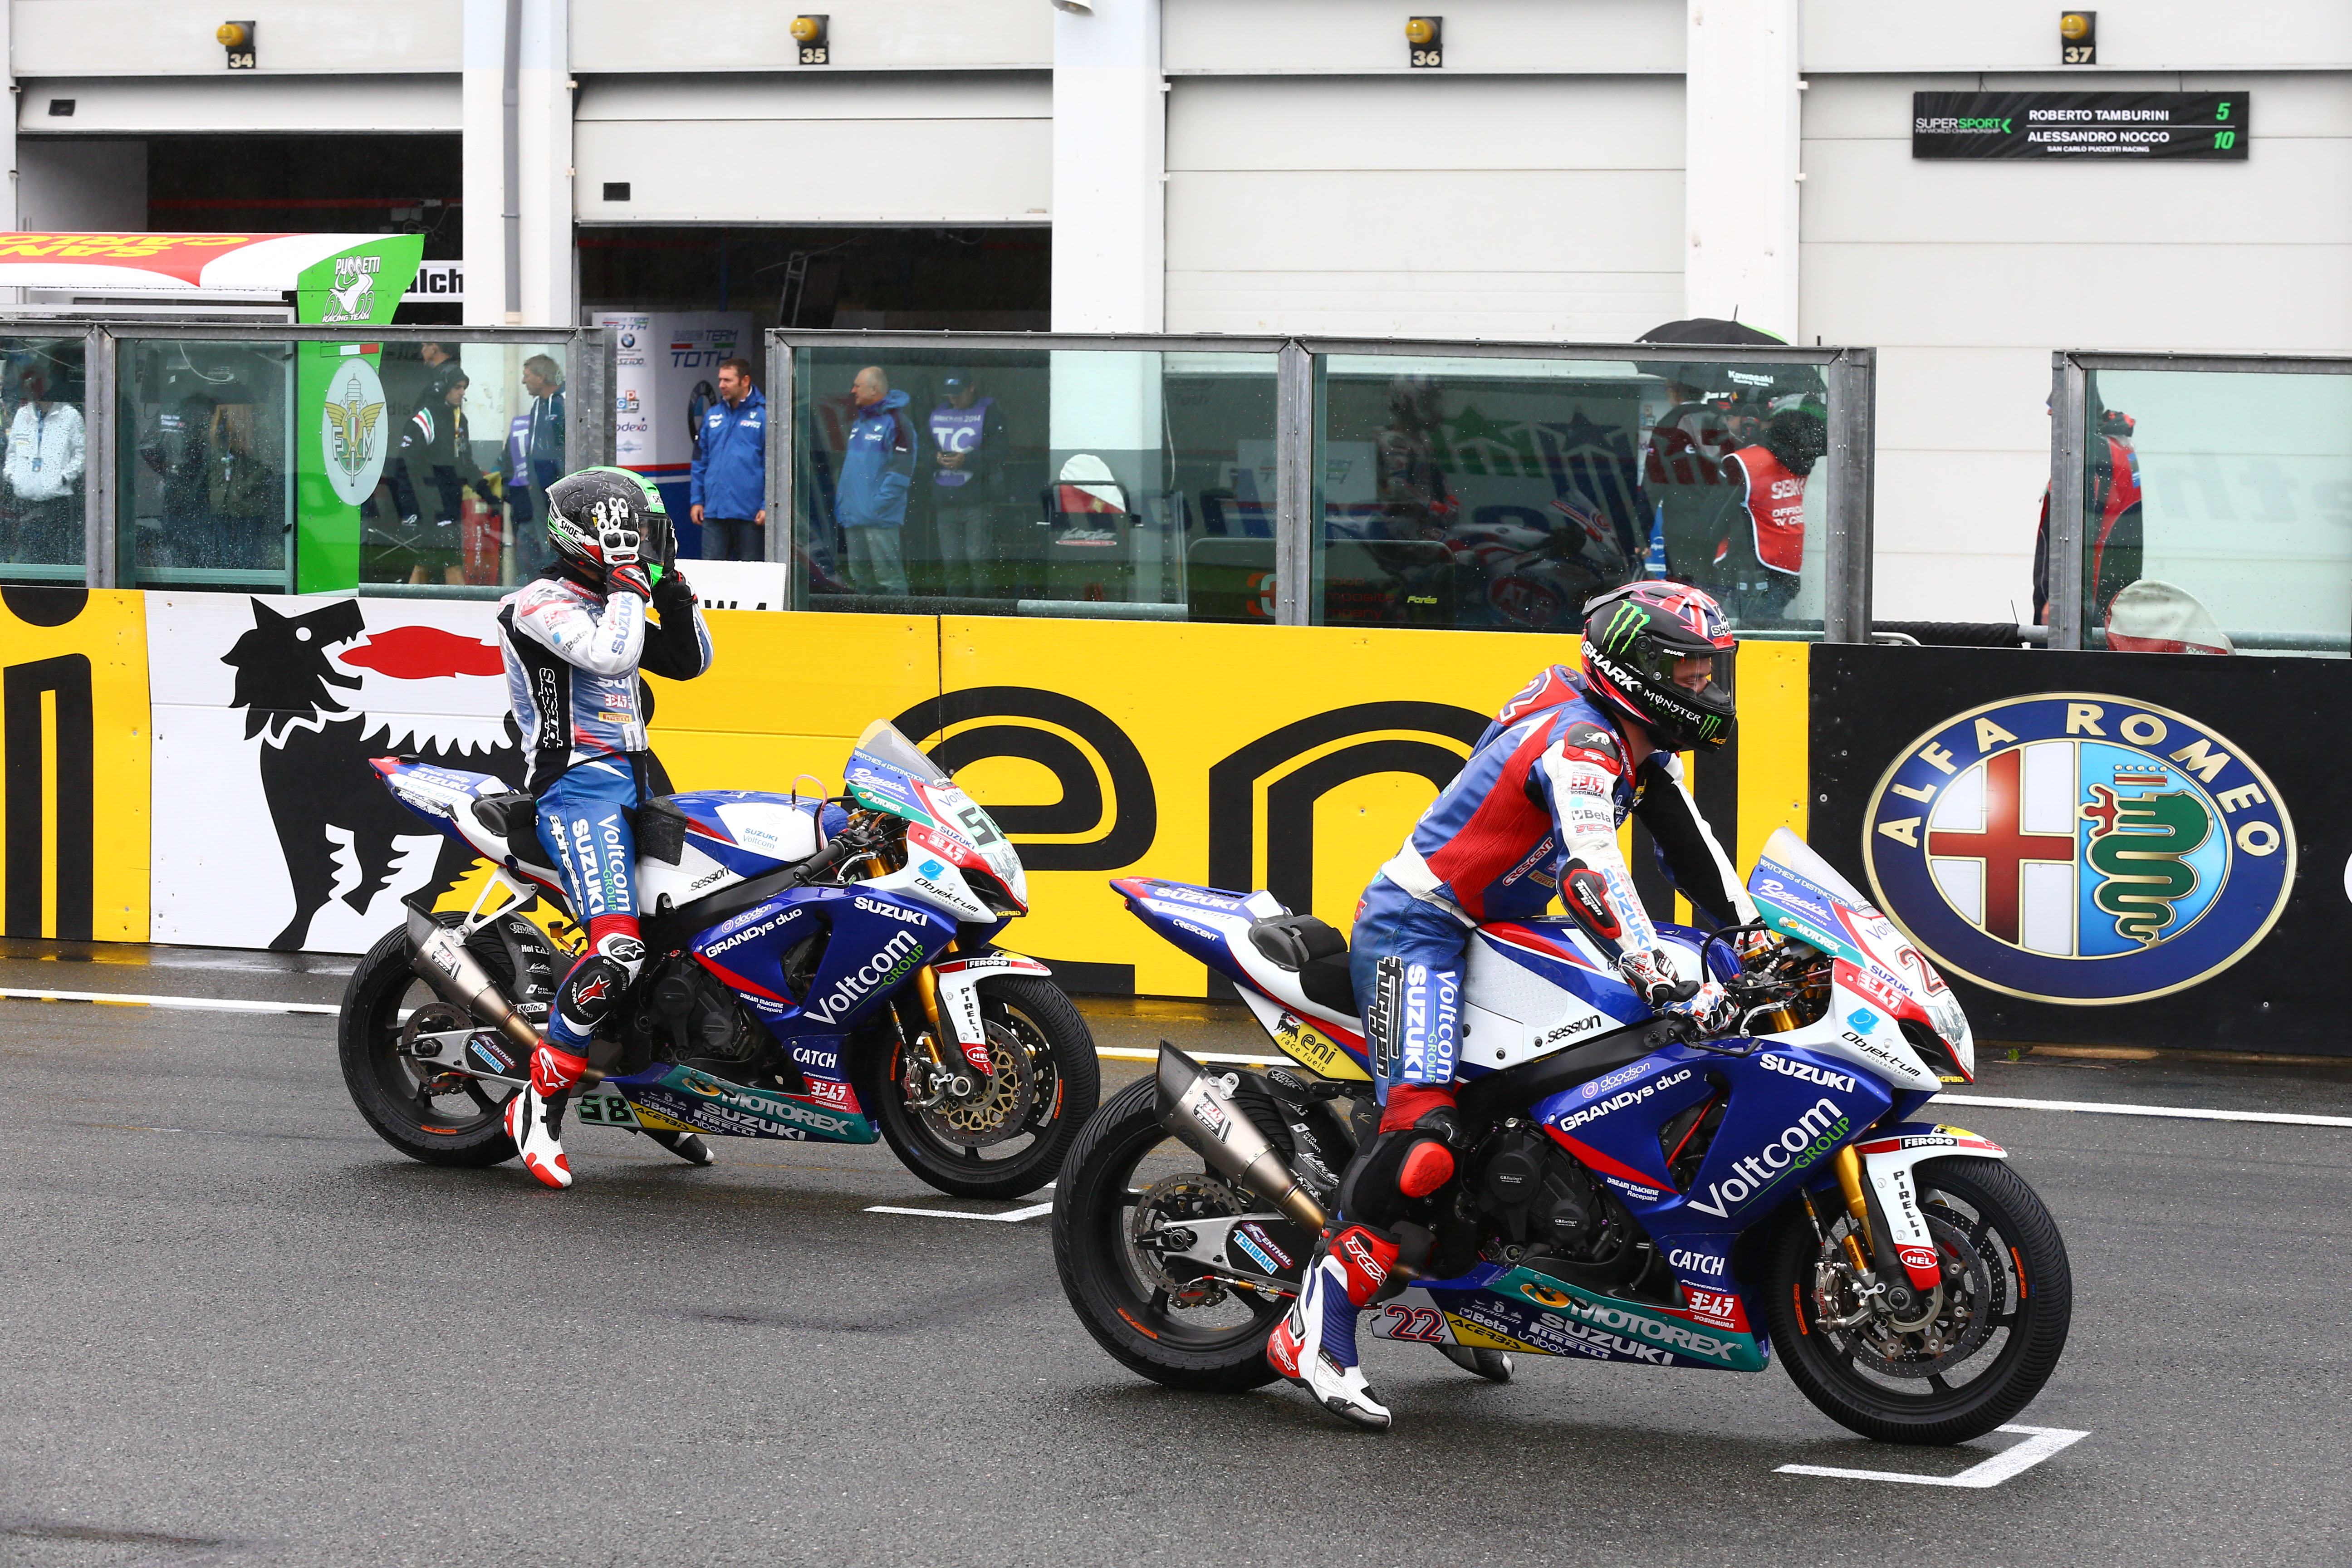 WSB 2014: Magny-Cours race 2 results